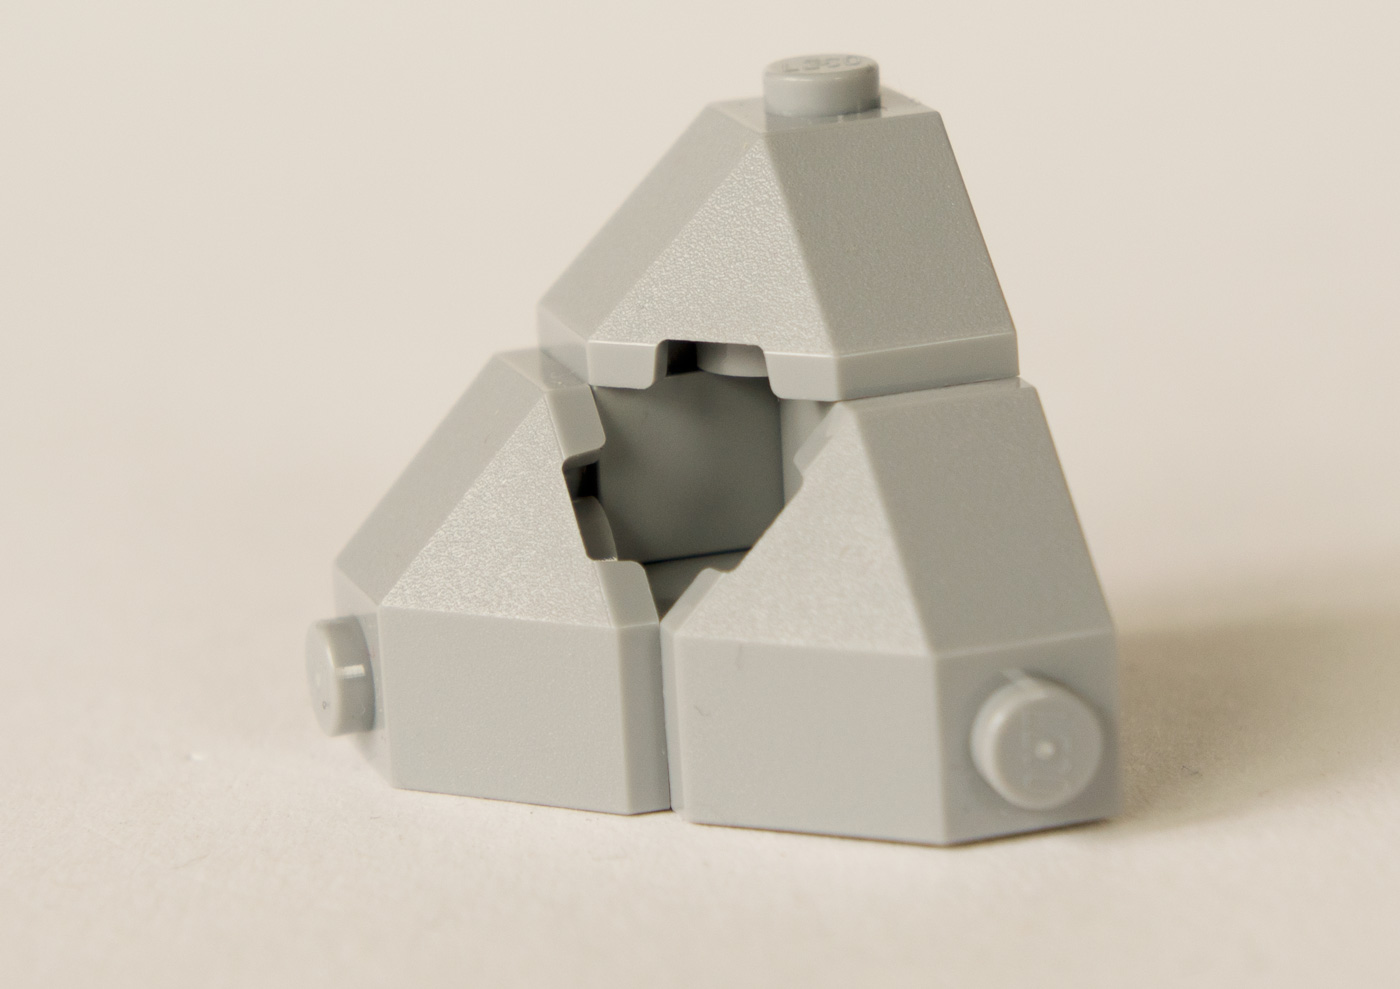 A High Of 45 Degrees New Elementary A Lego 174 Blog Of Parts